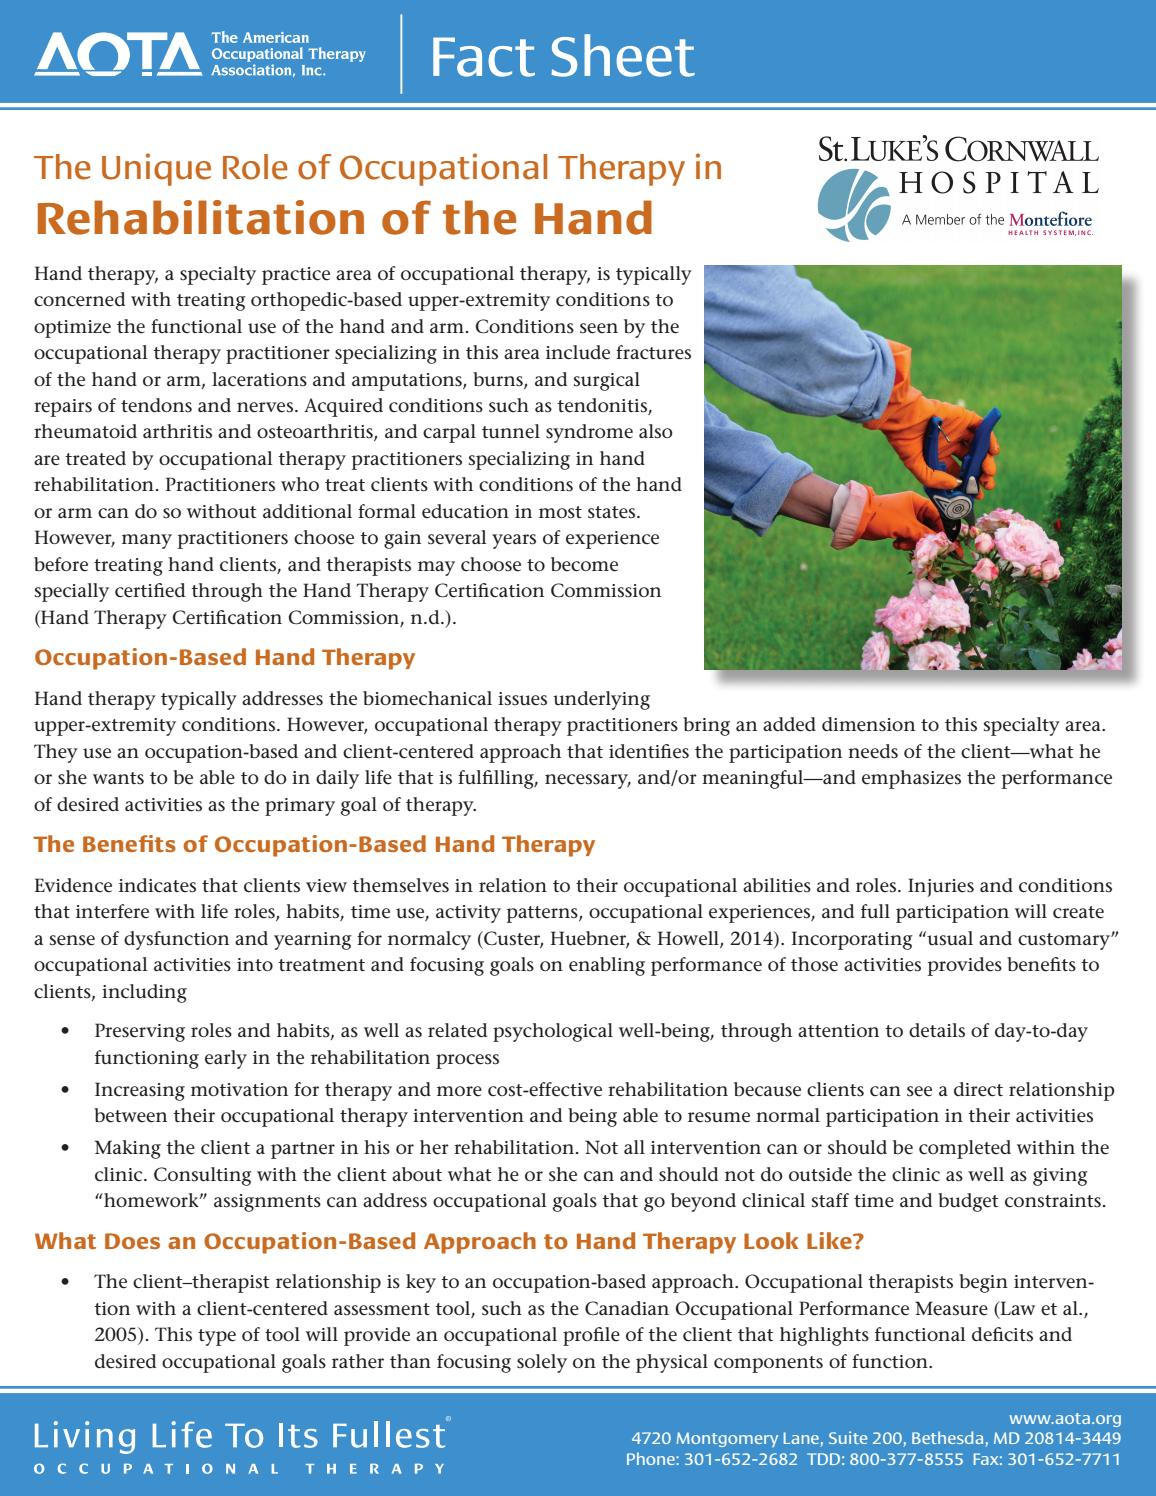 Aota Hand Therapy Fact Sheet By St Lukes Cornwall Hospital Issuu